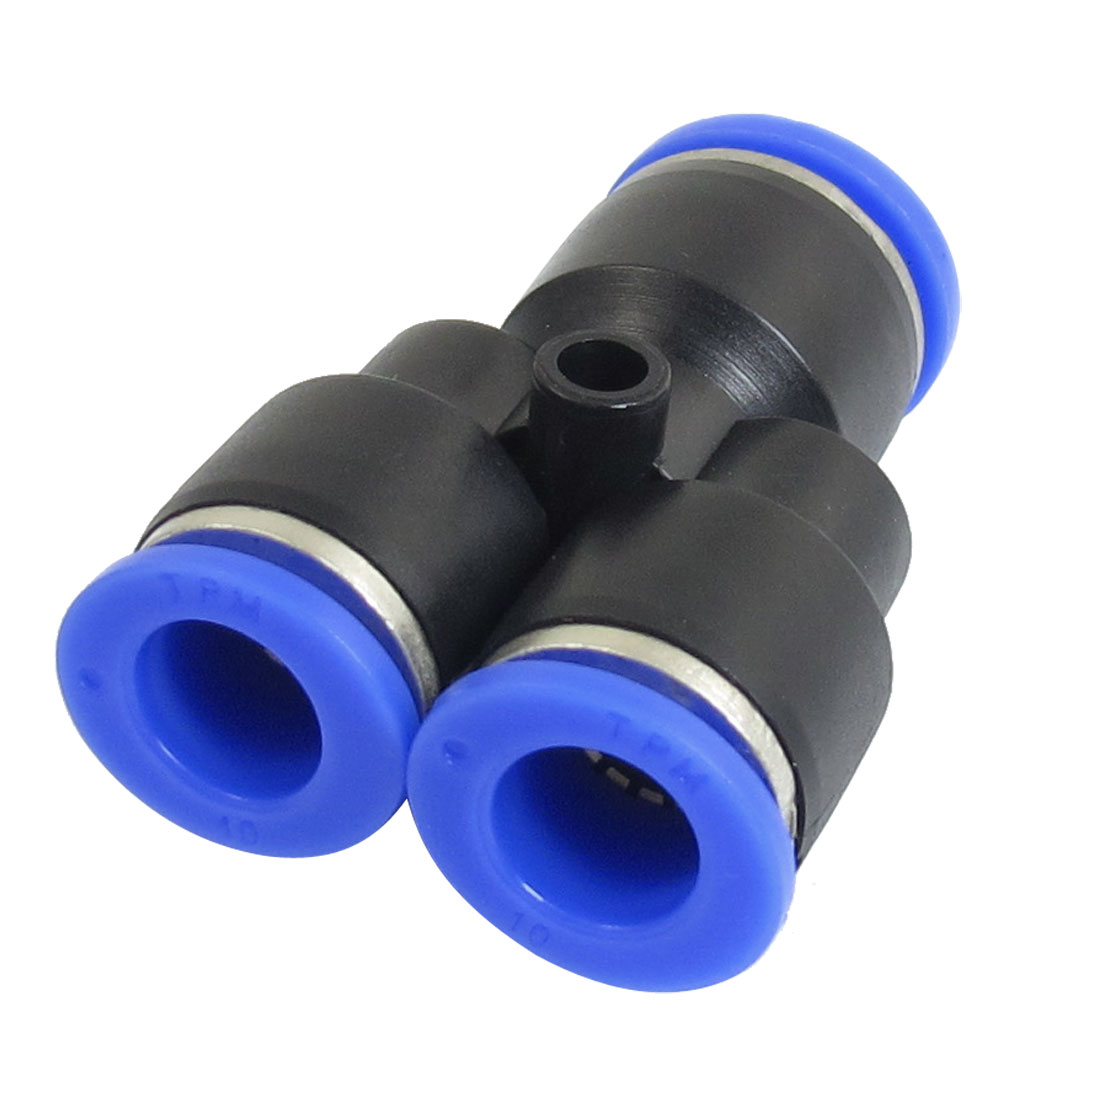 Unique Bargains 12mm to 10mm One Touch Y Union Quick Fitting Instant Connector Blue Black